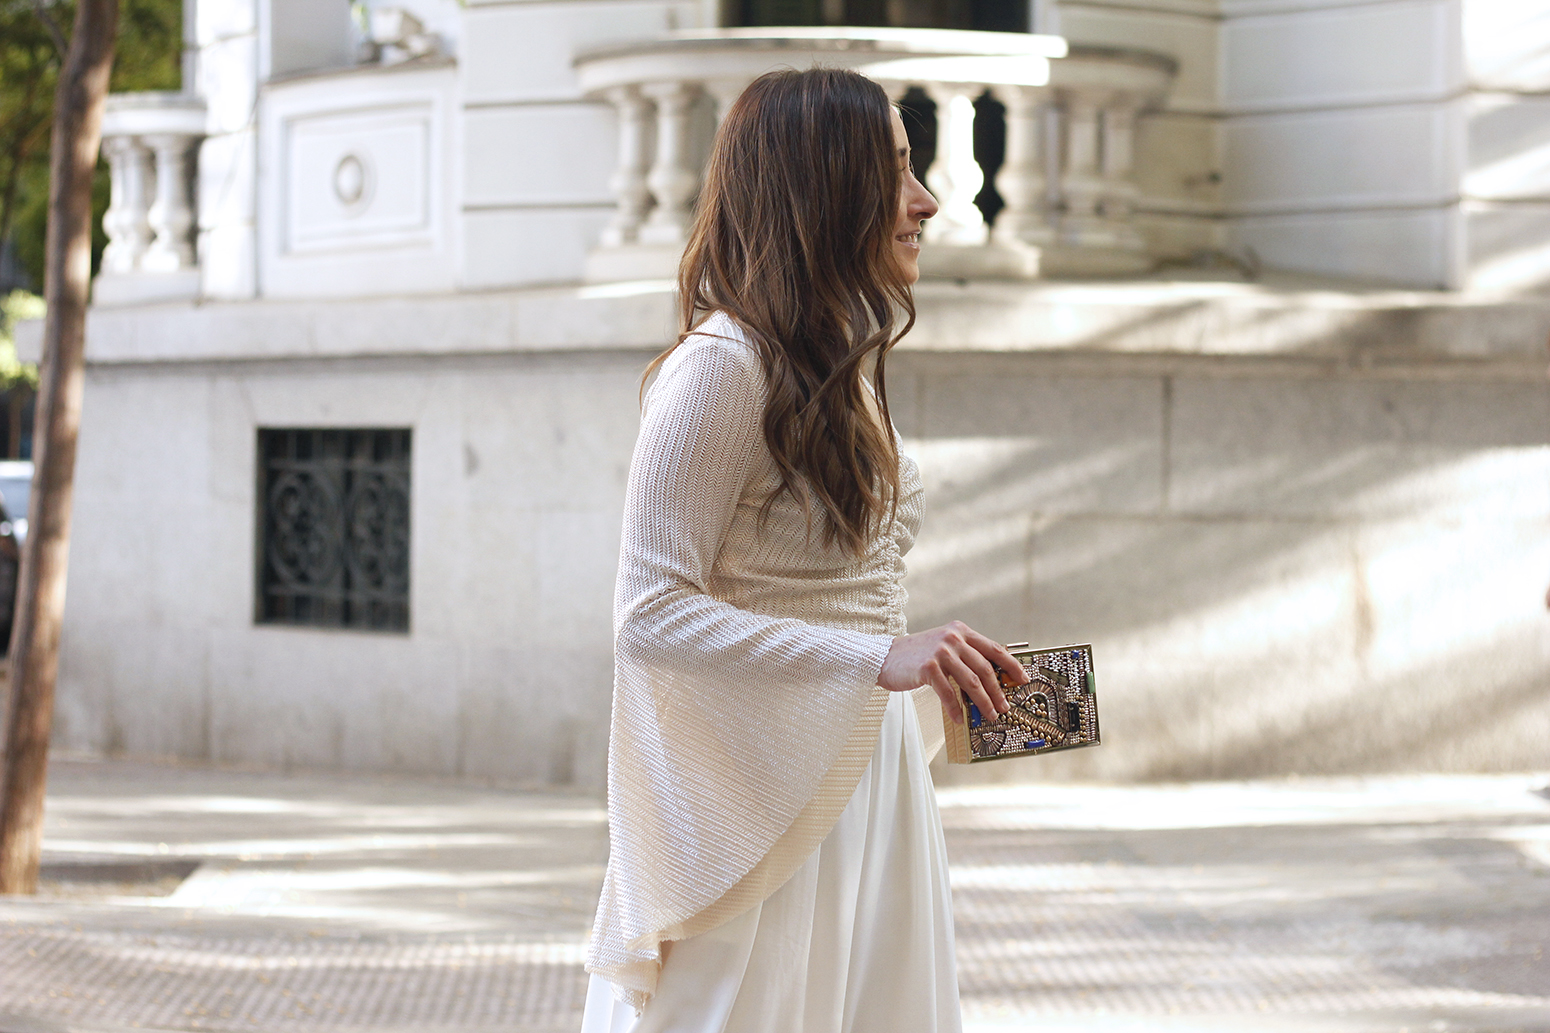 look de invitada lola casademunt white palazzo pants golden top street style outfit 201911